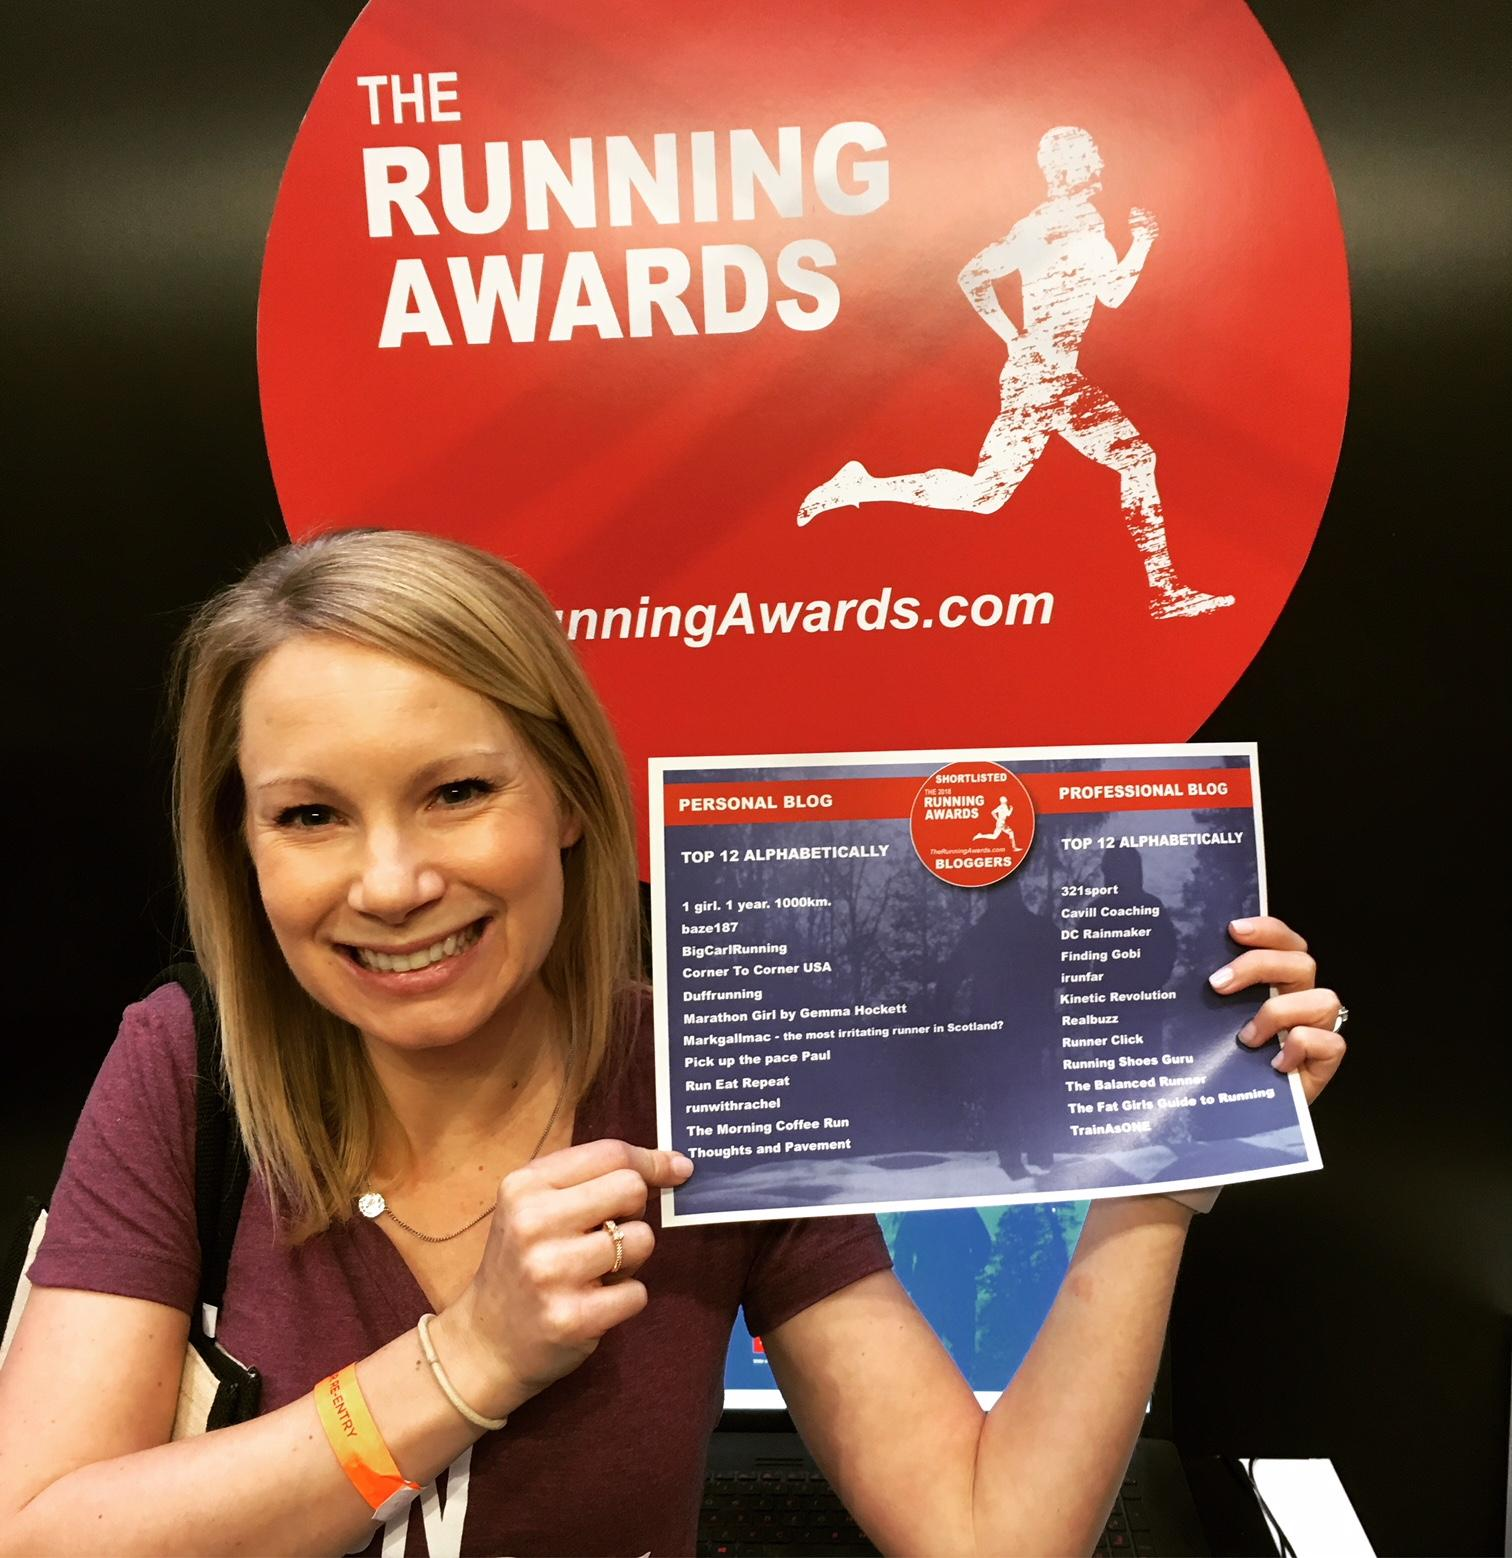 The Running Awards